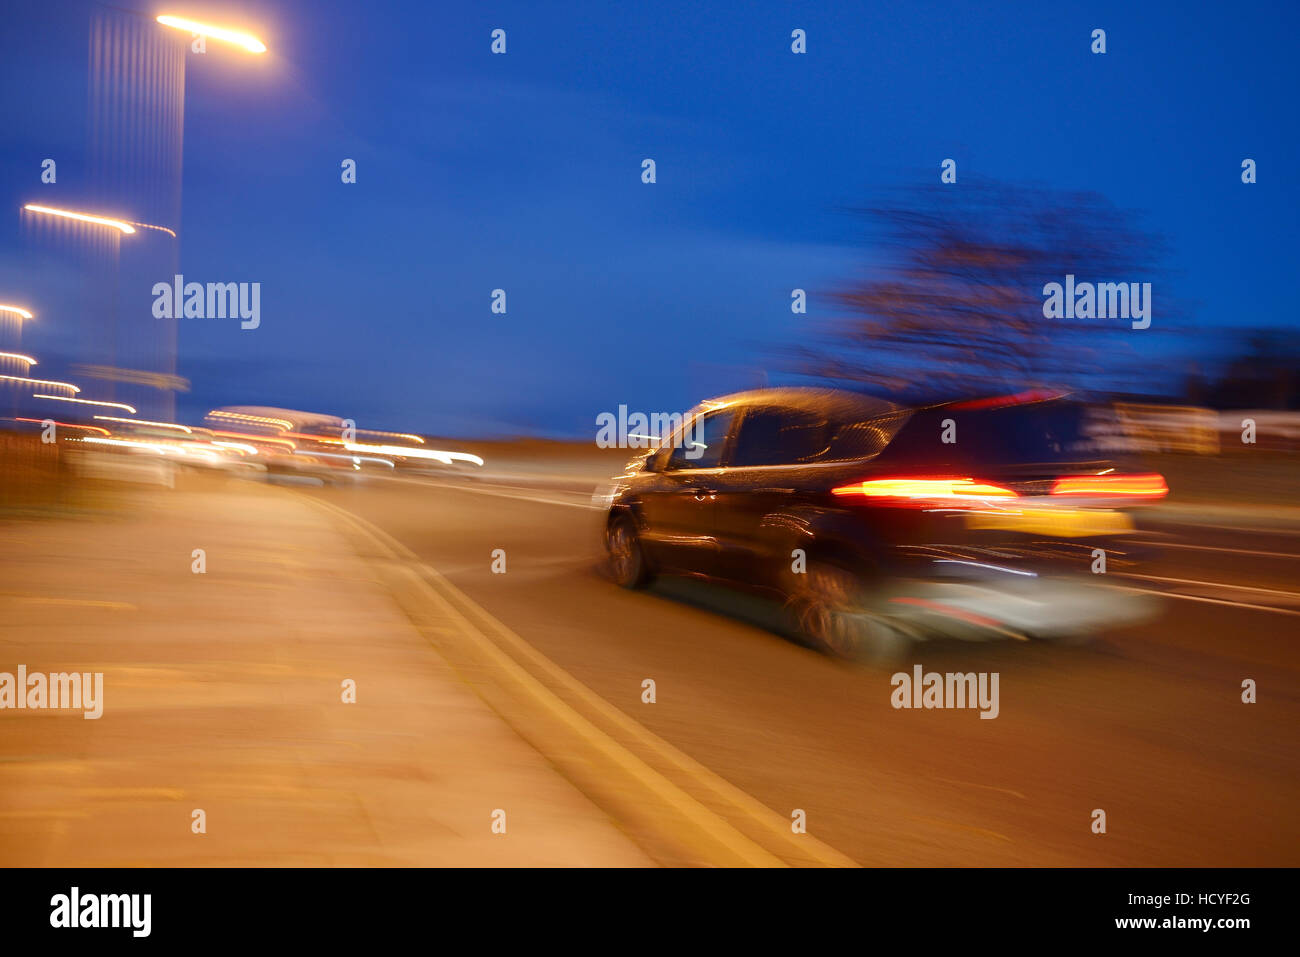 Blurred traffic on an urban road at dusk - Stock Image